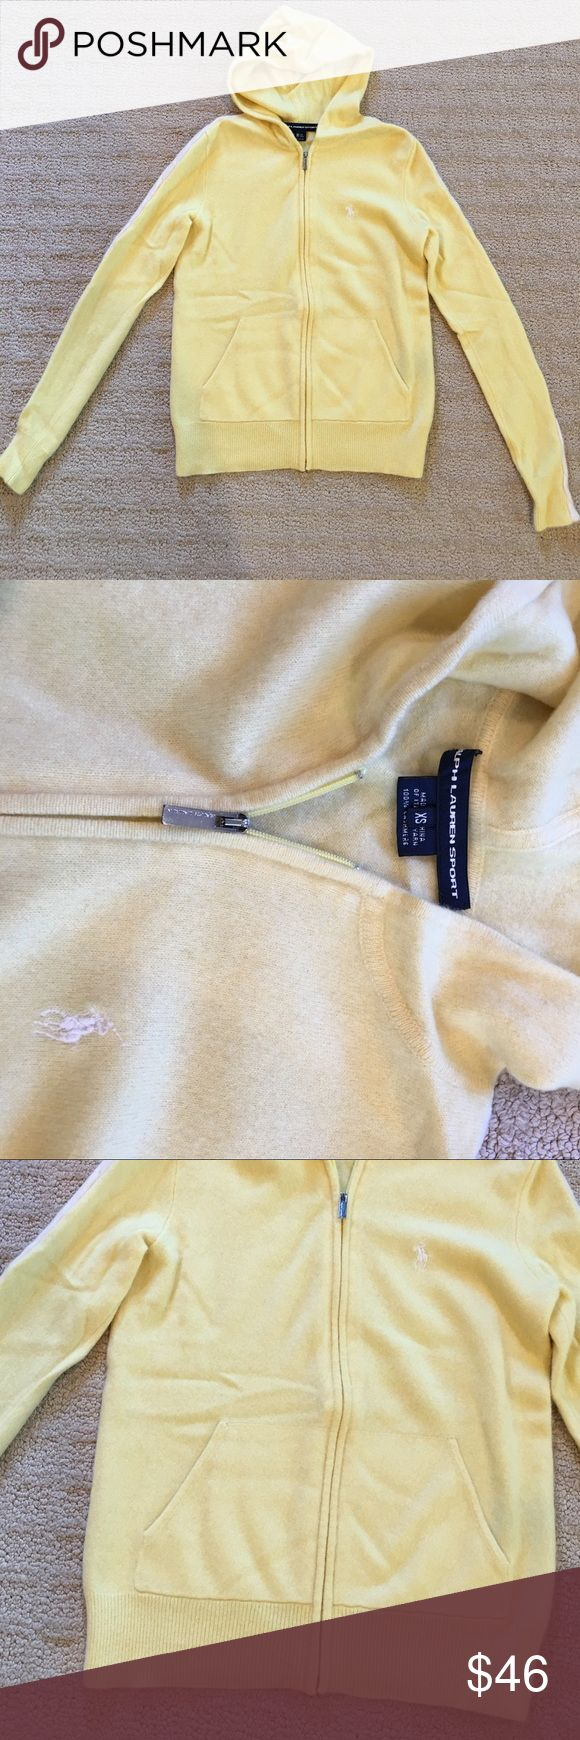 Ralph Lauren Sport yellow cashmere sweater XS Yellow zip up hoodie sweater in a light yellow color. White cannot trim brown the sleeves. Super soft cashmere. In great condition with no holes or stains. XS Ralph Lauren Sweaters